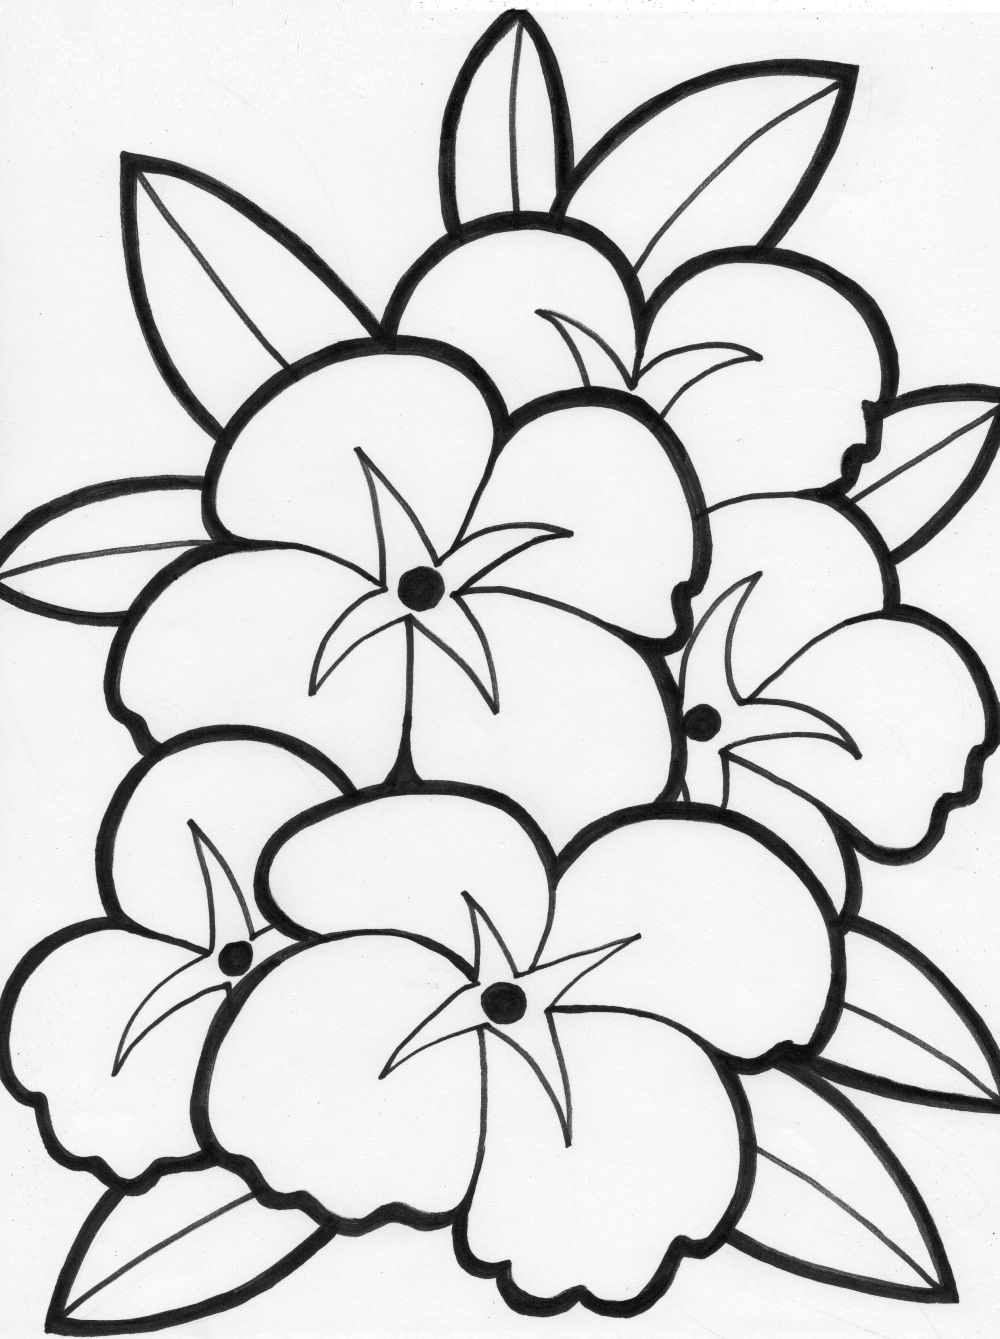 printable flower coloring pages for adults - Adult Coloring Pages Flowers & Paisley Design